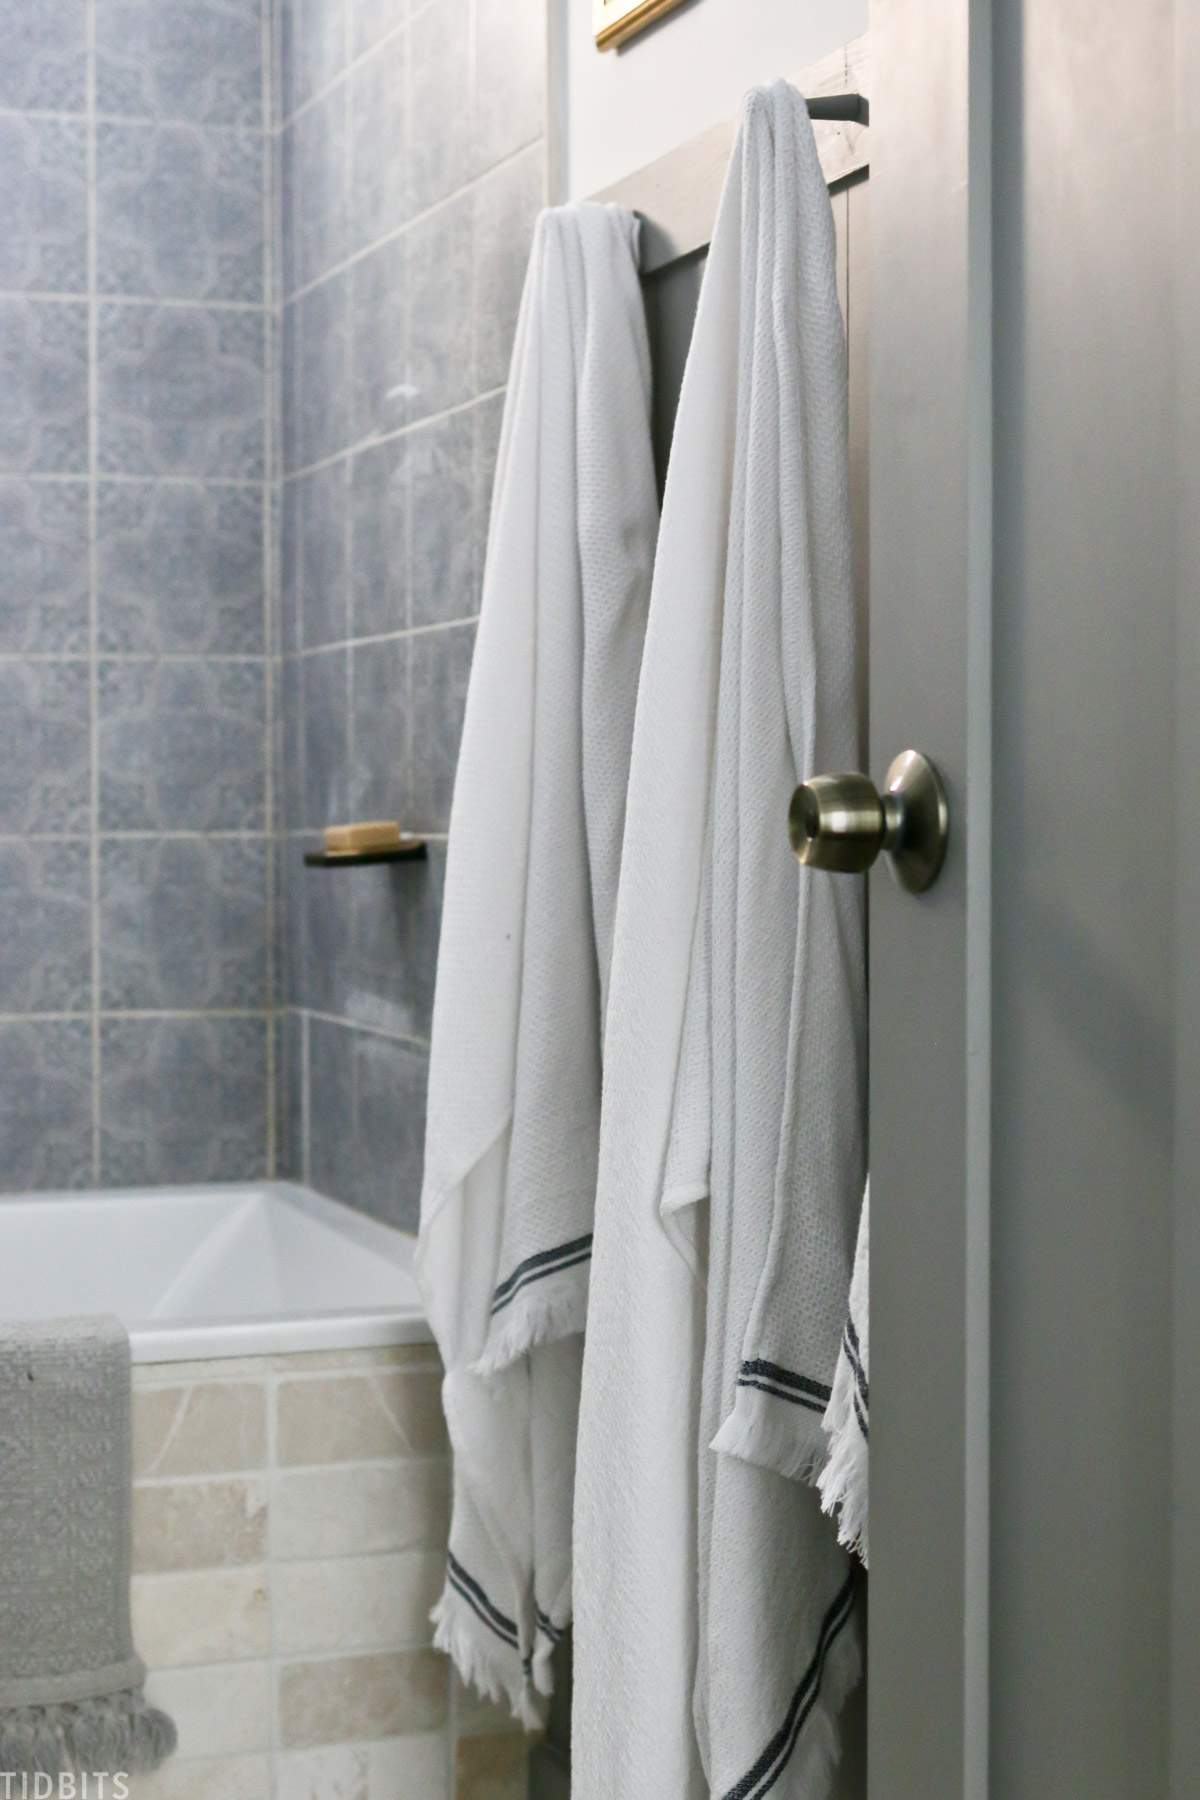 two towels hanging on towel rack next to bathtub